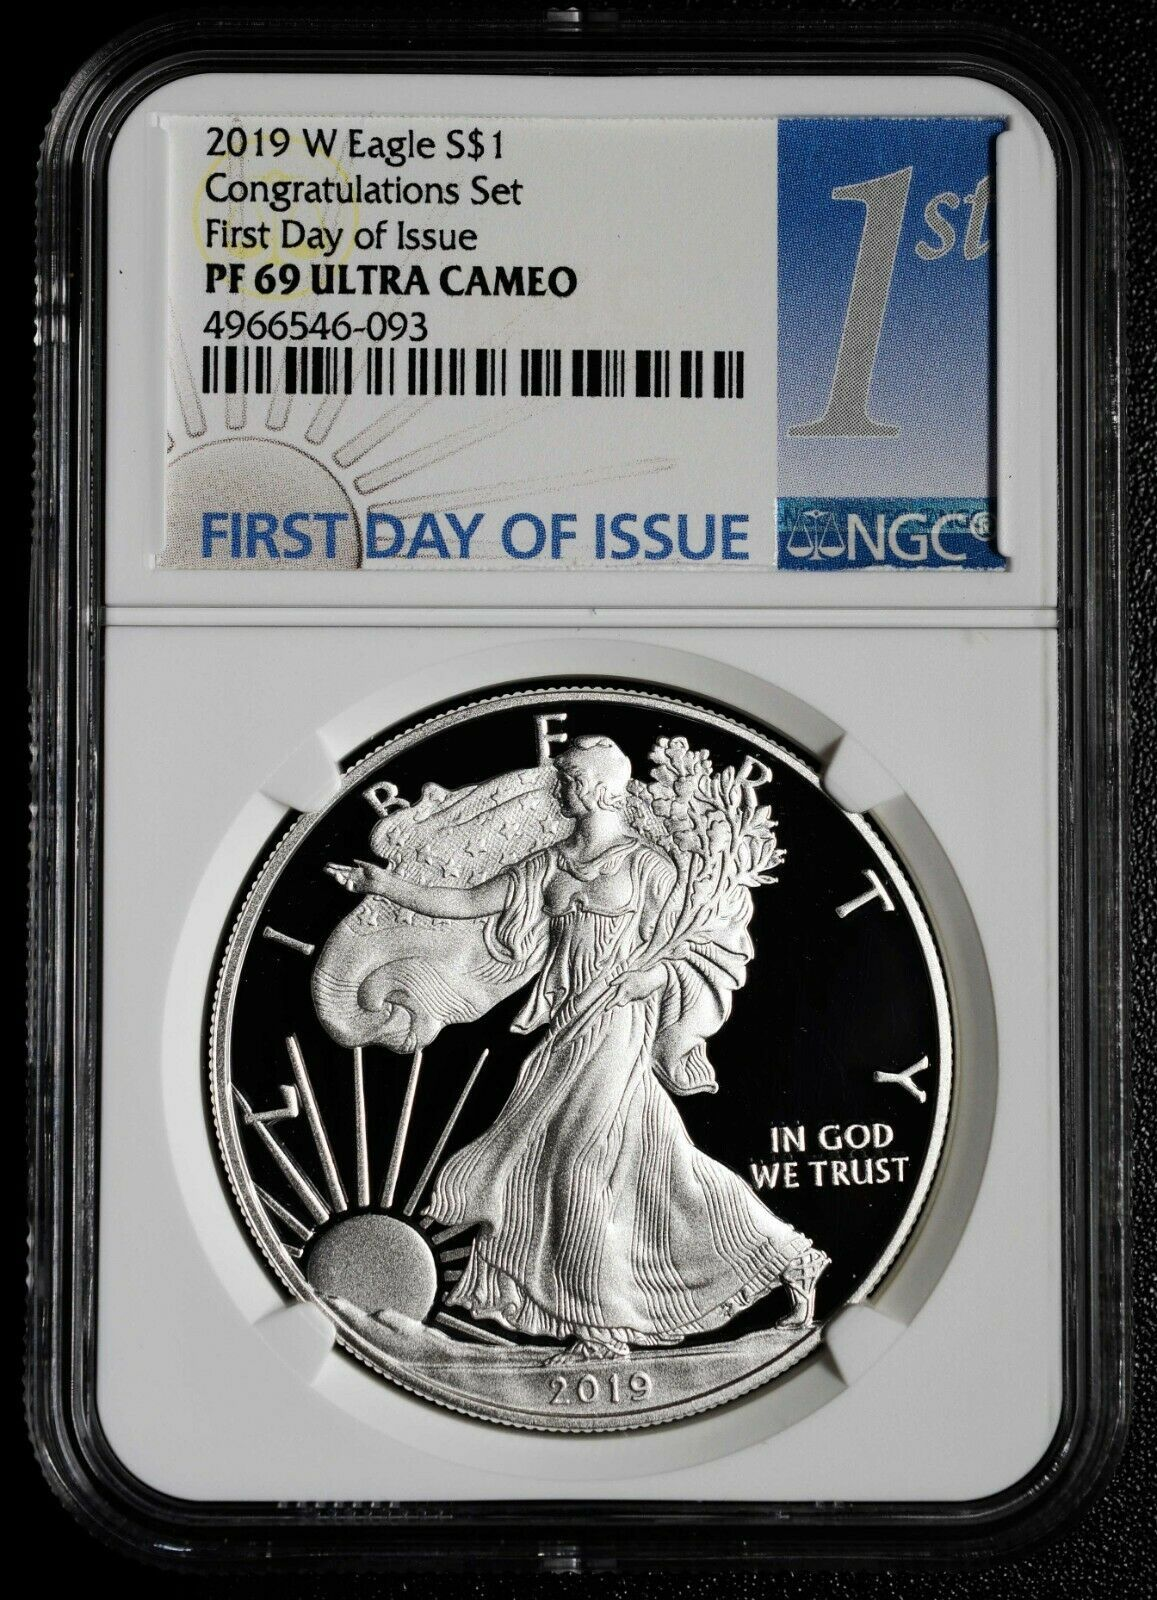 2019 W Congratulations Set Silver Eagle NGC PF69 Coin First Day Proof SKU C69